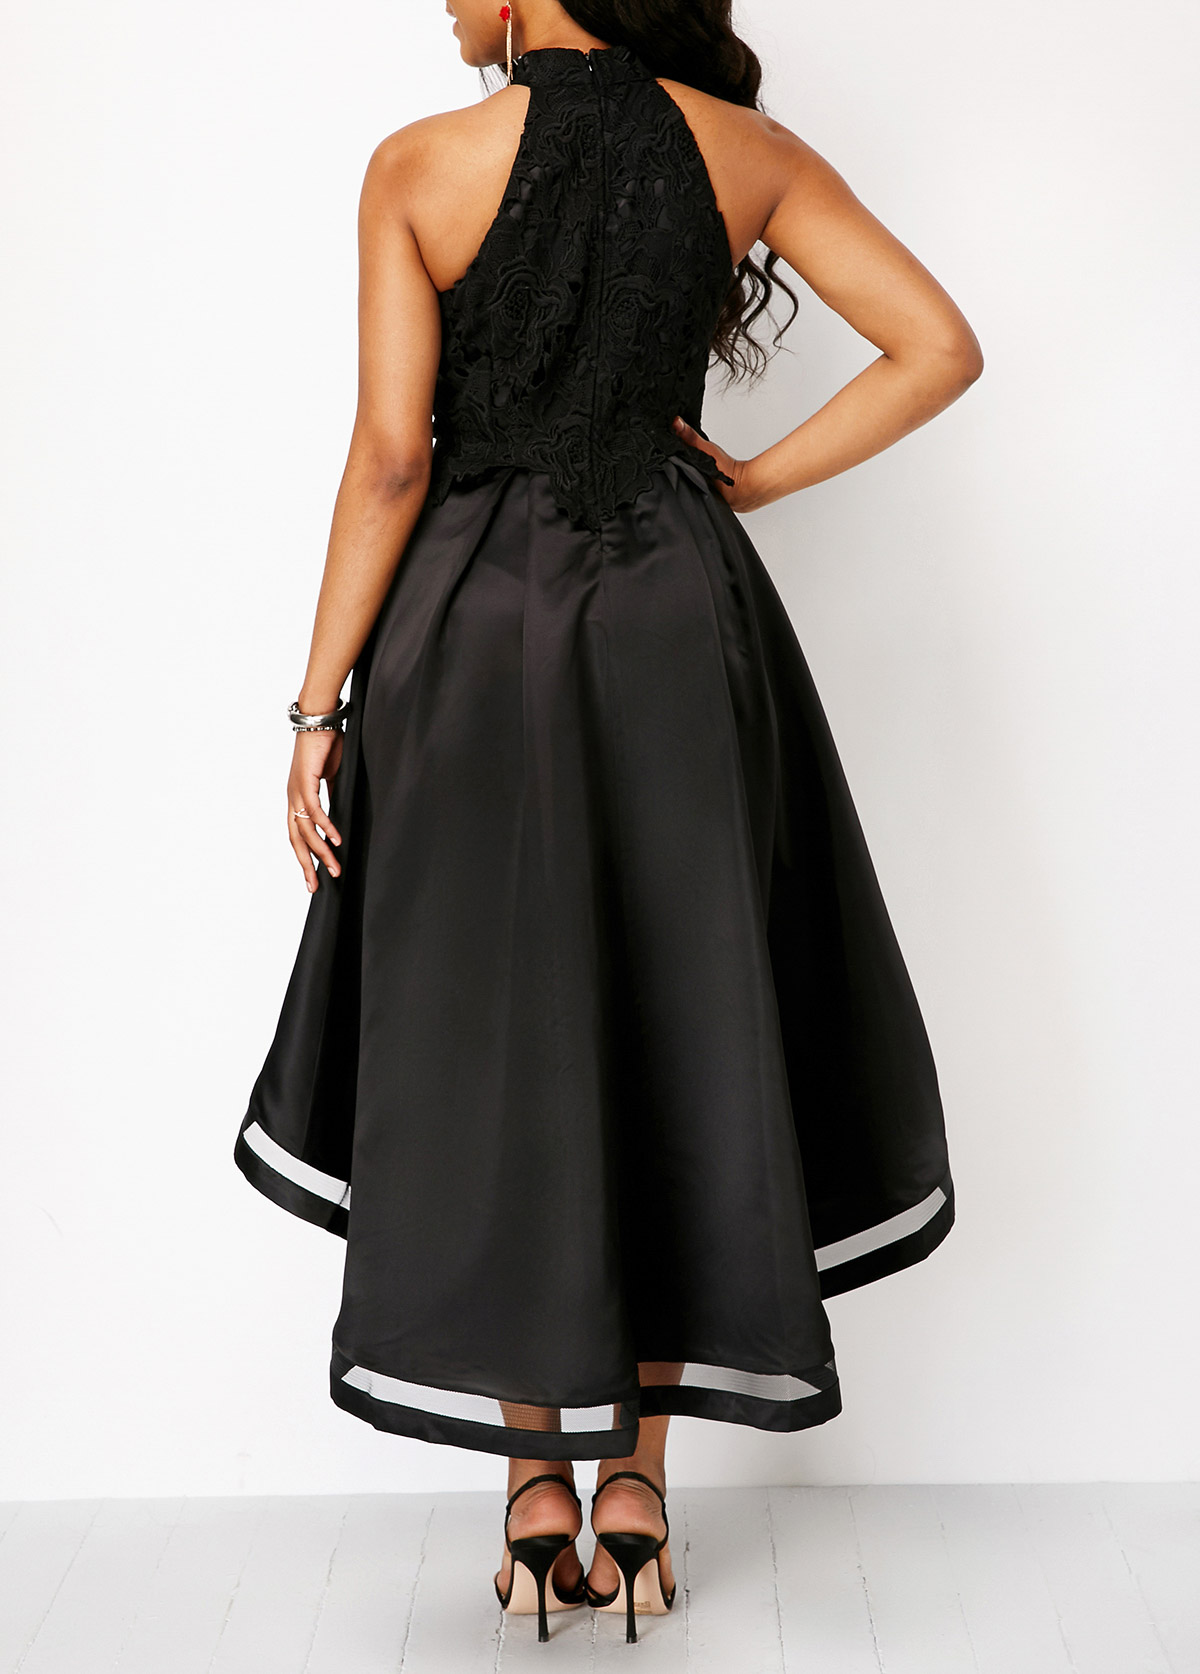 d67f5b269a4 Black Lace Panel Sleeveless High Low Dress. AddThis Sharing Buttons. Share  to Facebook Share to Pinterest